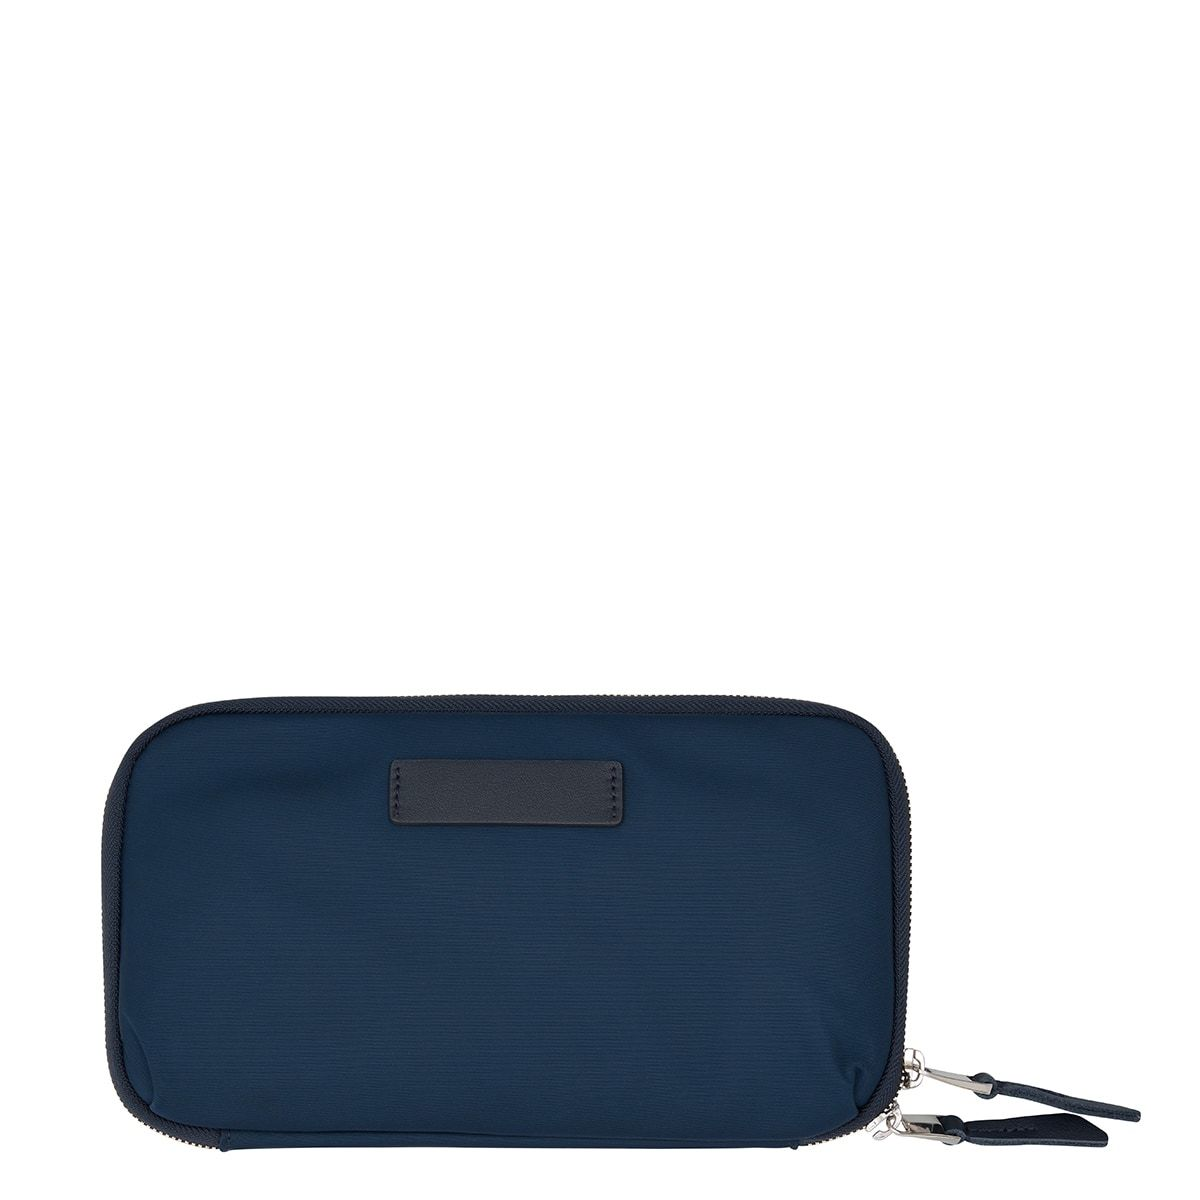 "KNOMO Knomad Travel Wallet Travel Organiser From Back 8"" -  Dark Navy Blazer 